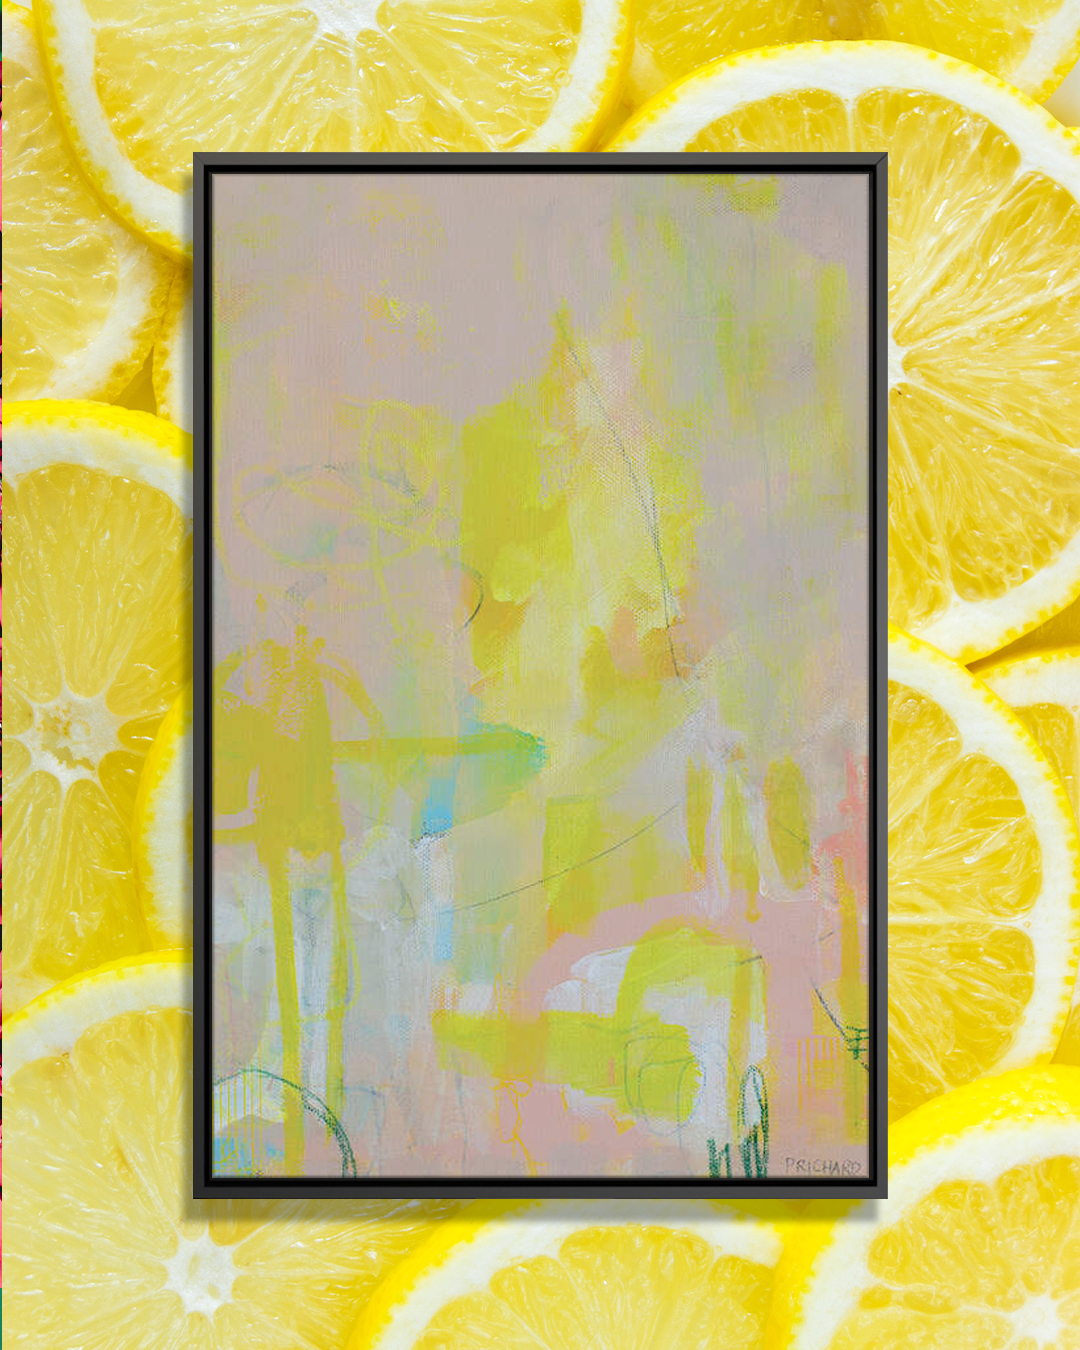 """""""Lipgloss And Lemon Pie"""" by Julie Prichard shows yellow shapes and streaks against a pink background with pops of white and green."""